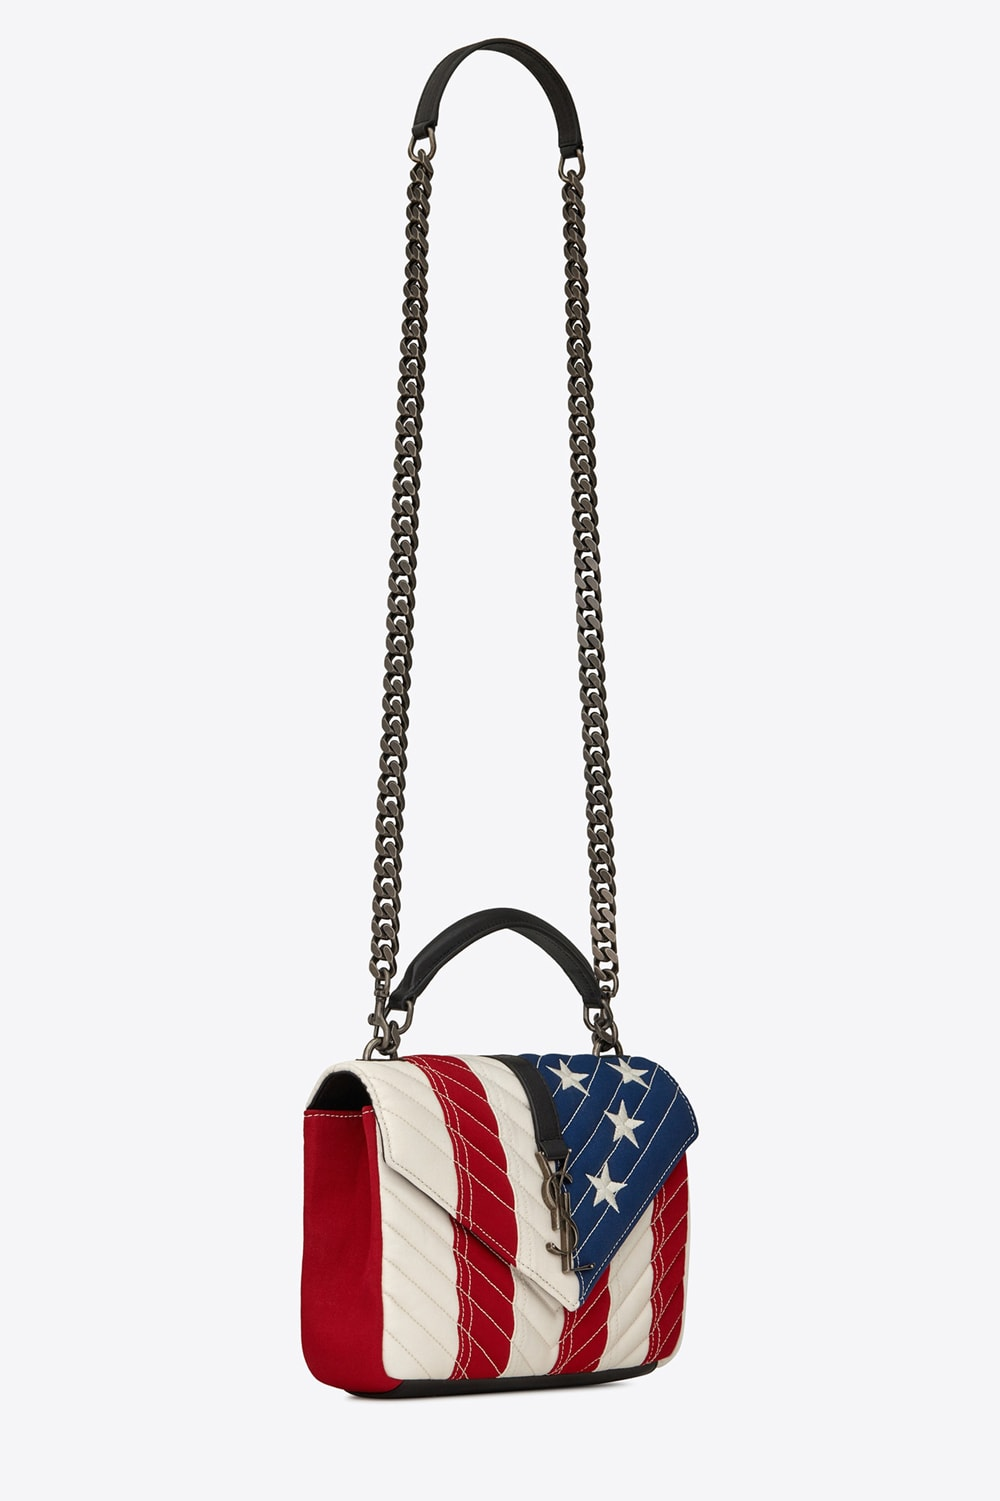 7ab54db8975 It's a bird, it's a plane, it's flying flag? Nope it's just the Saint  Laurent Medium College Bag in American Flag Patchwork. You're not seeing  stars my ...